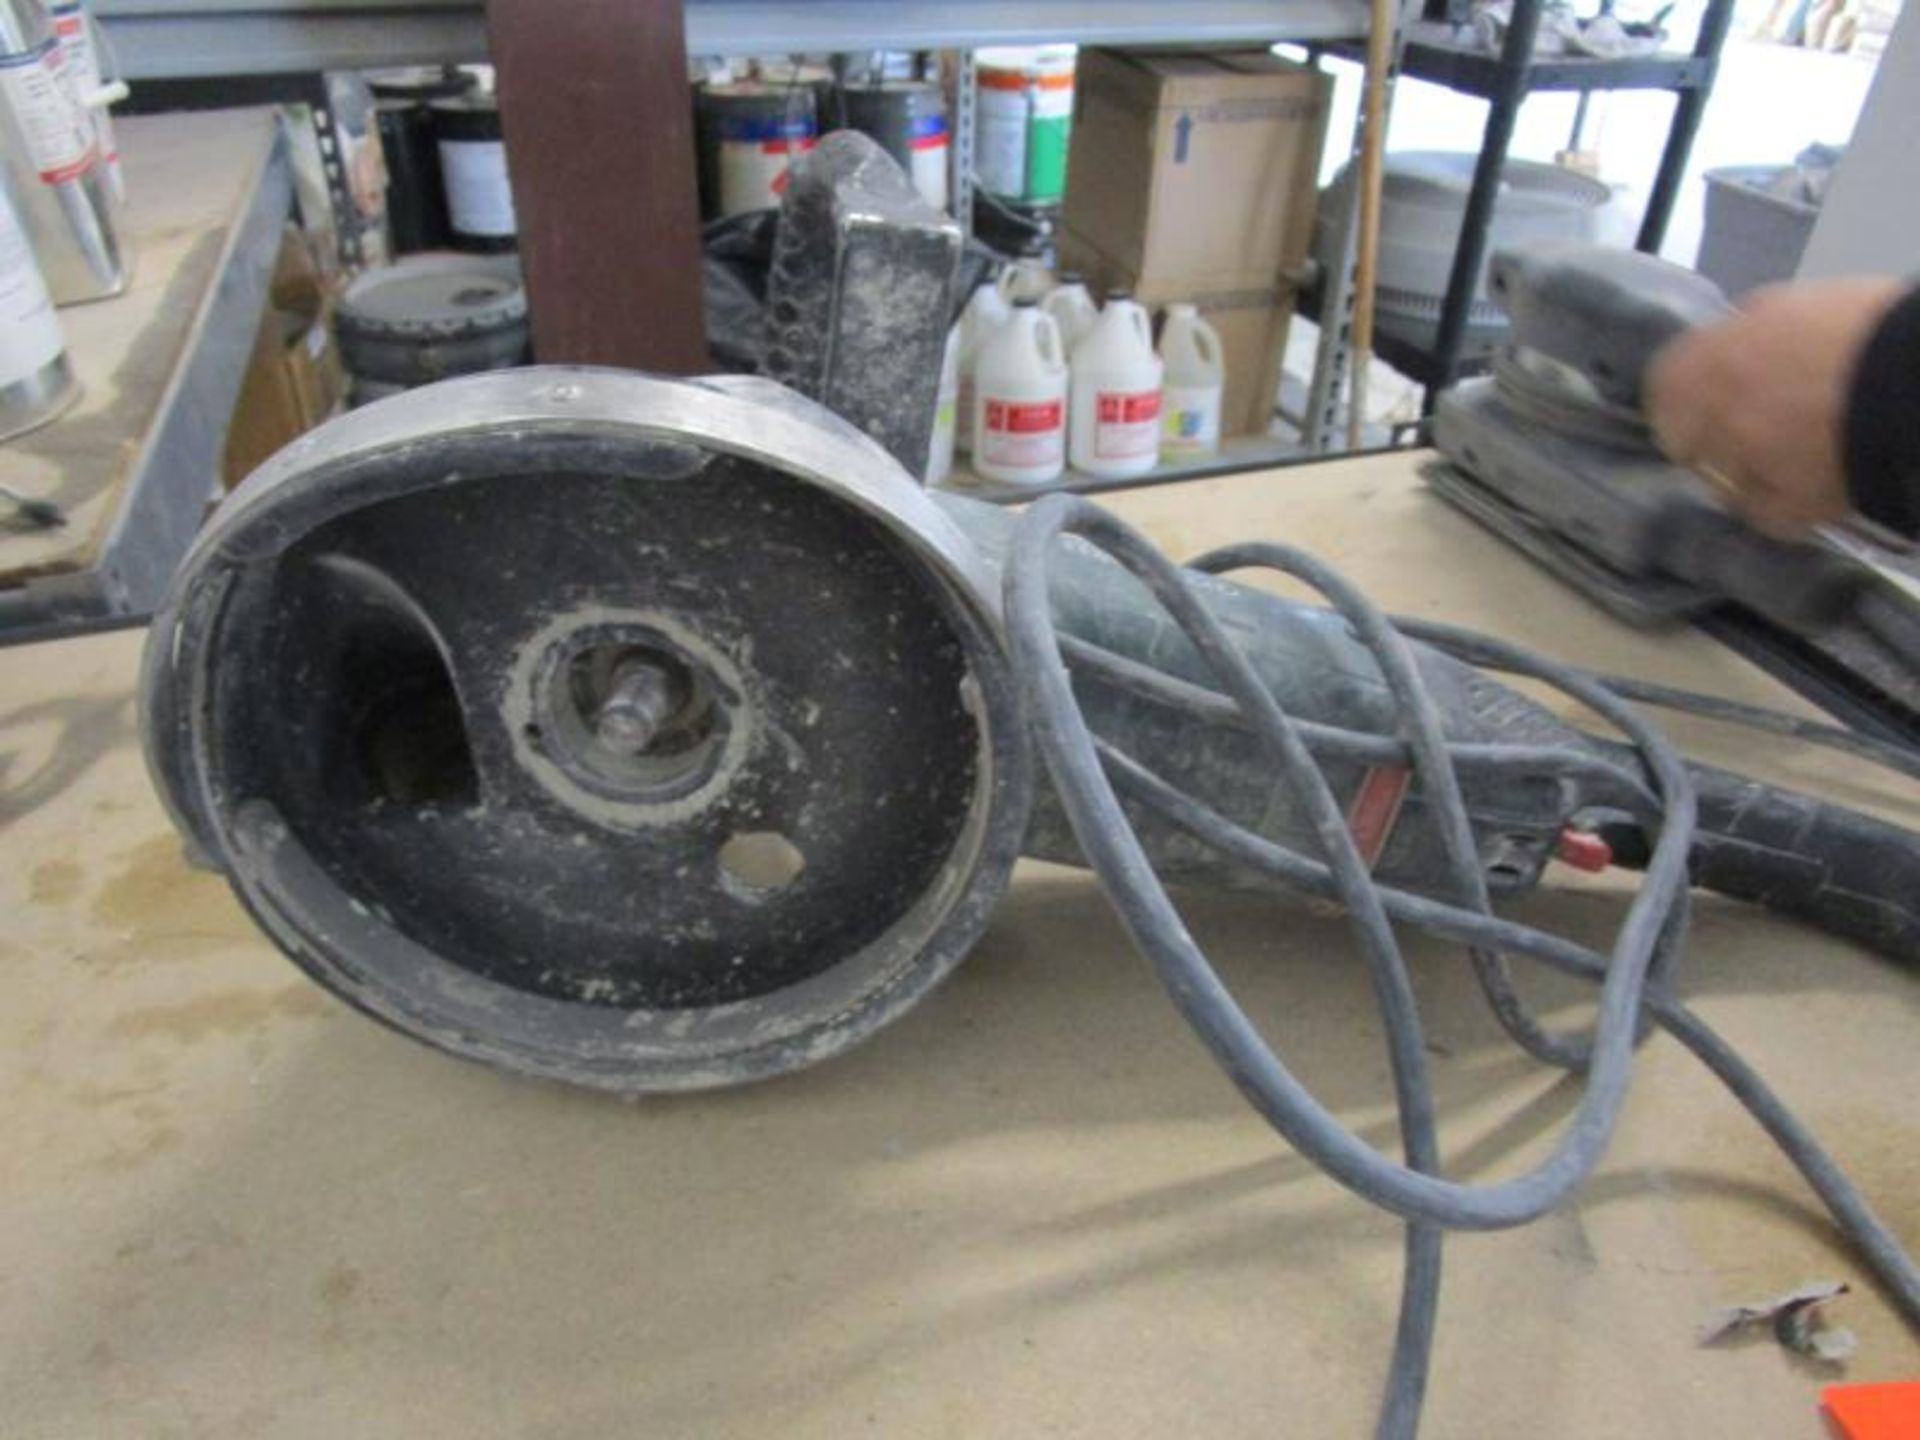 Lot 46 - Metabo Grinder, Model: W24-230MVT, Doe Not Power Up